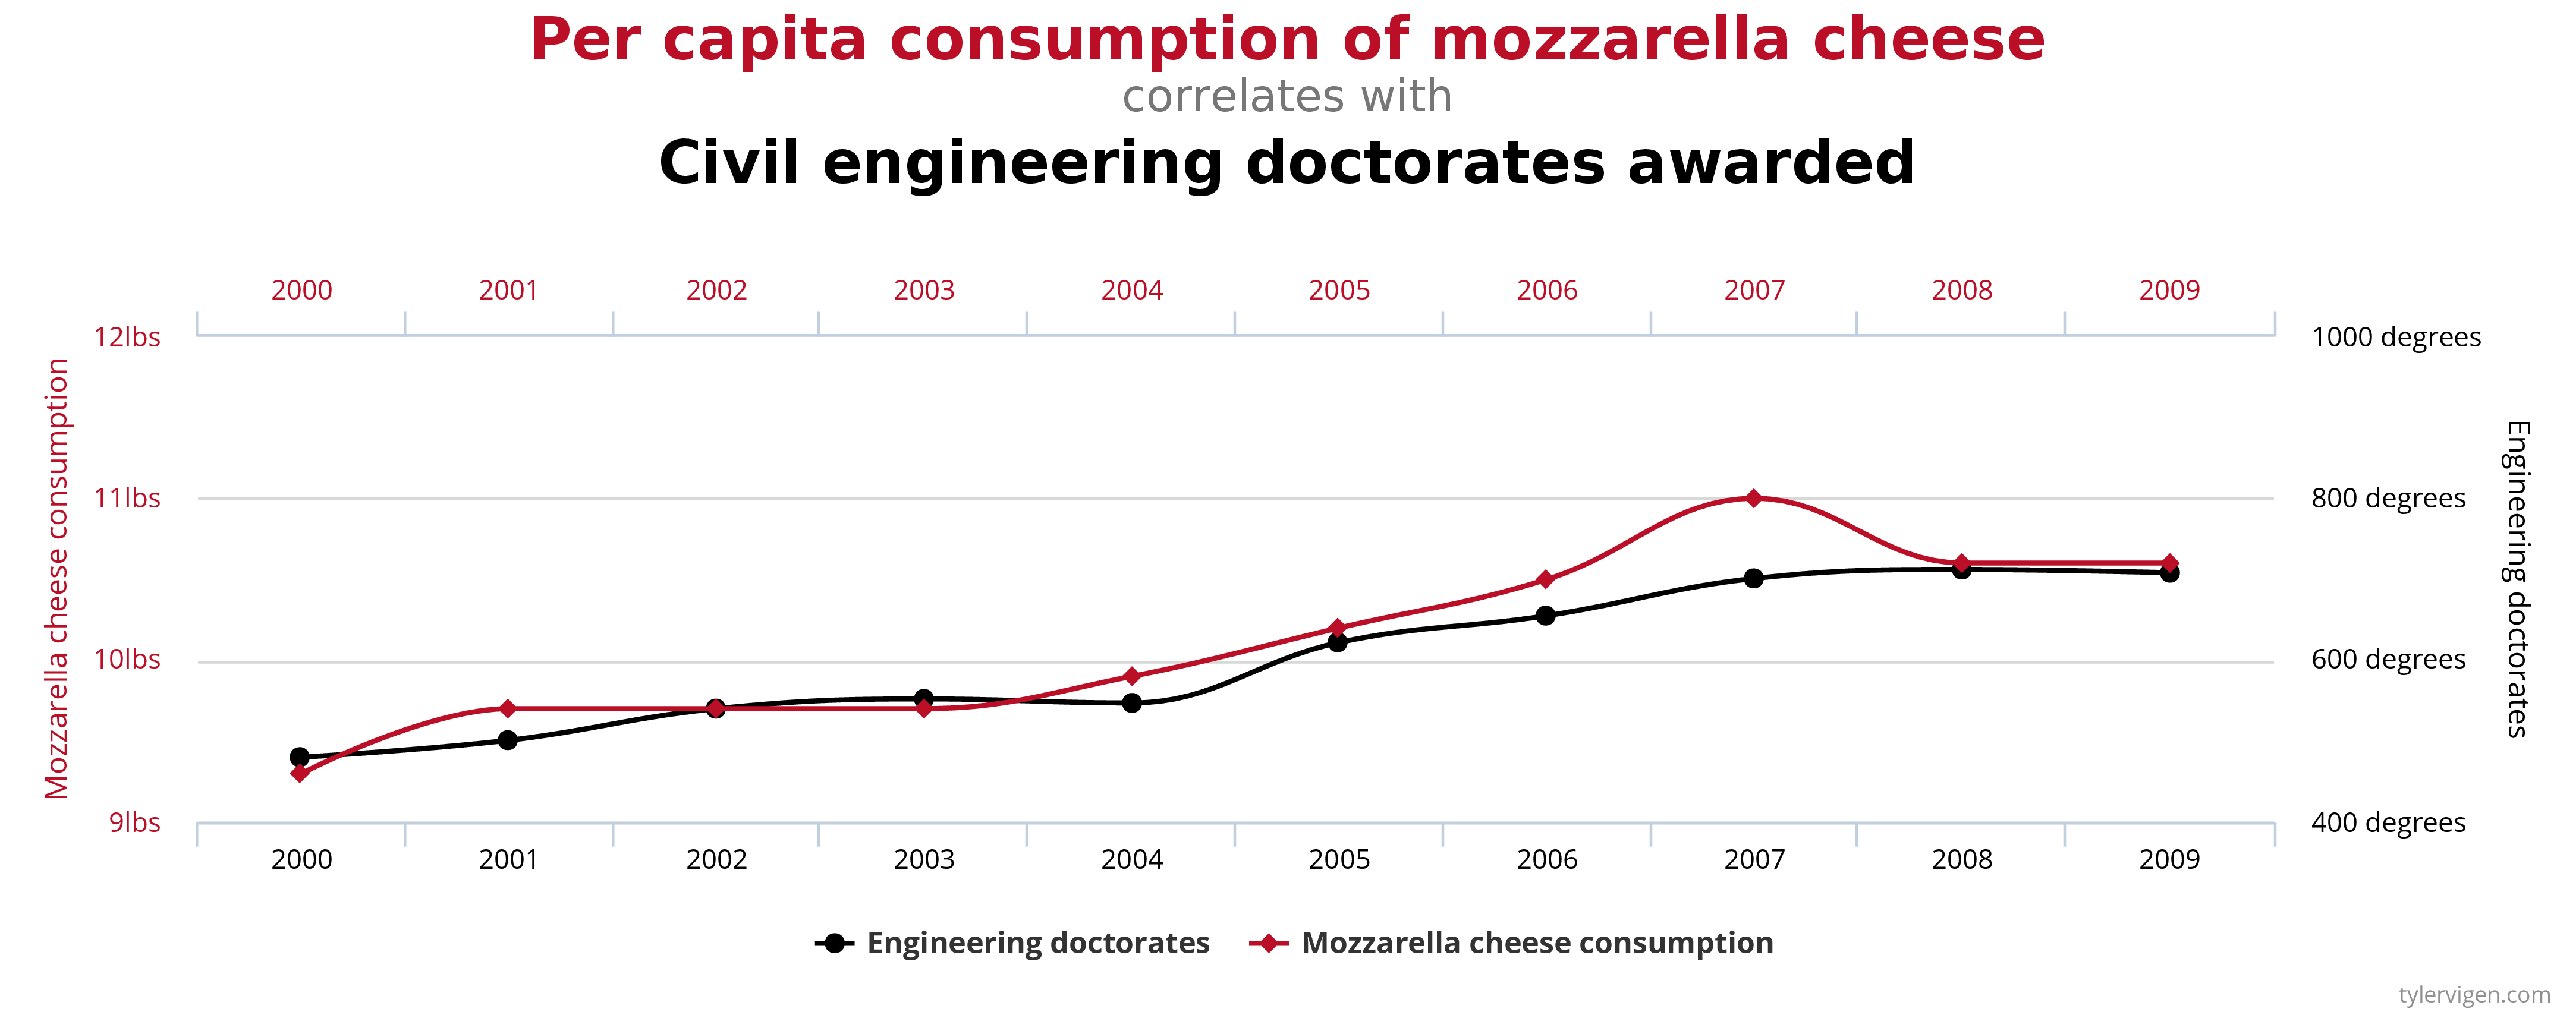 A chart showing the correlation between per capita consumption of mozzarella cheese, and the number of civil engineering doctorates awarded.